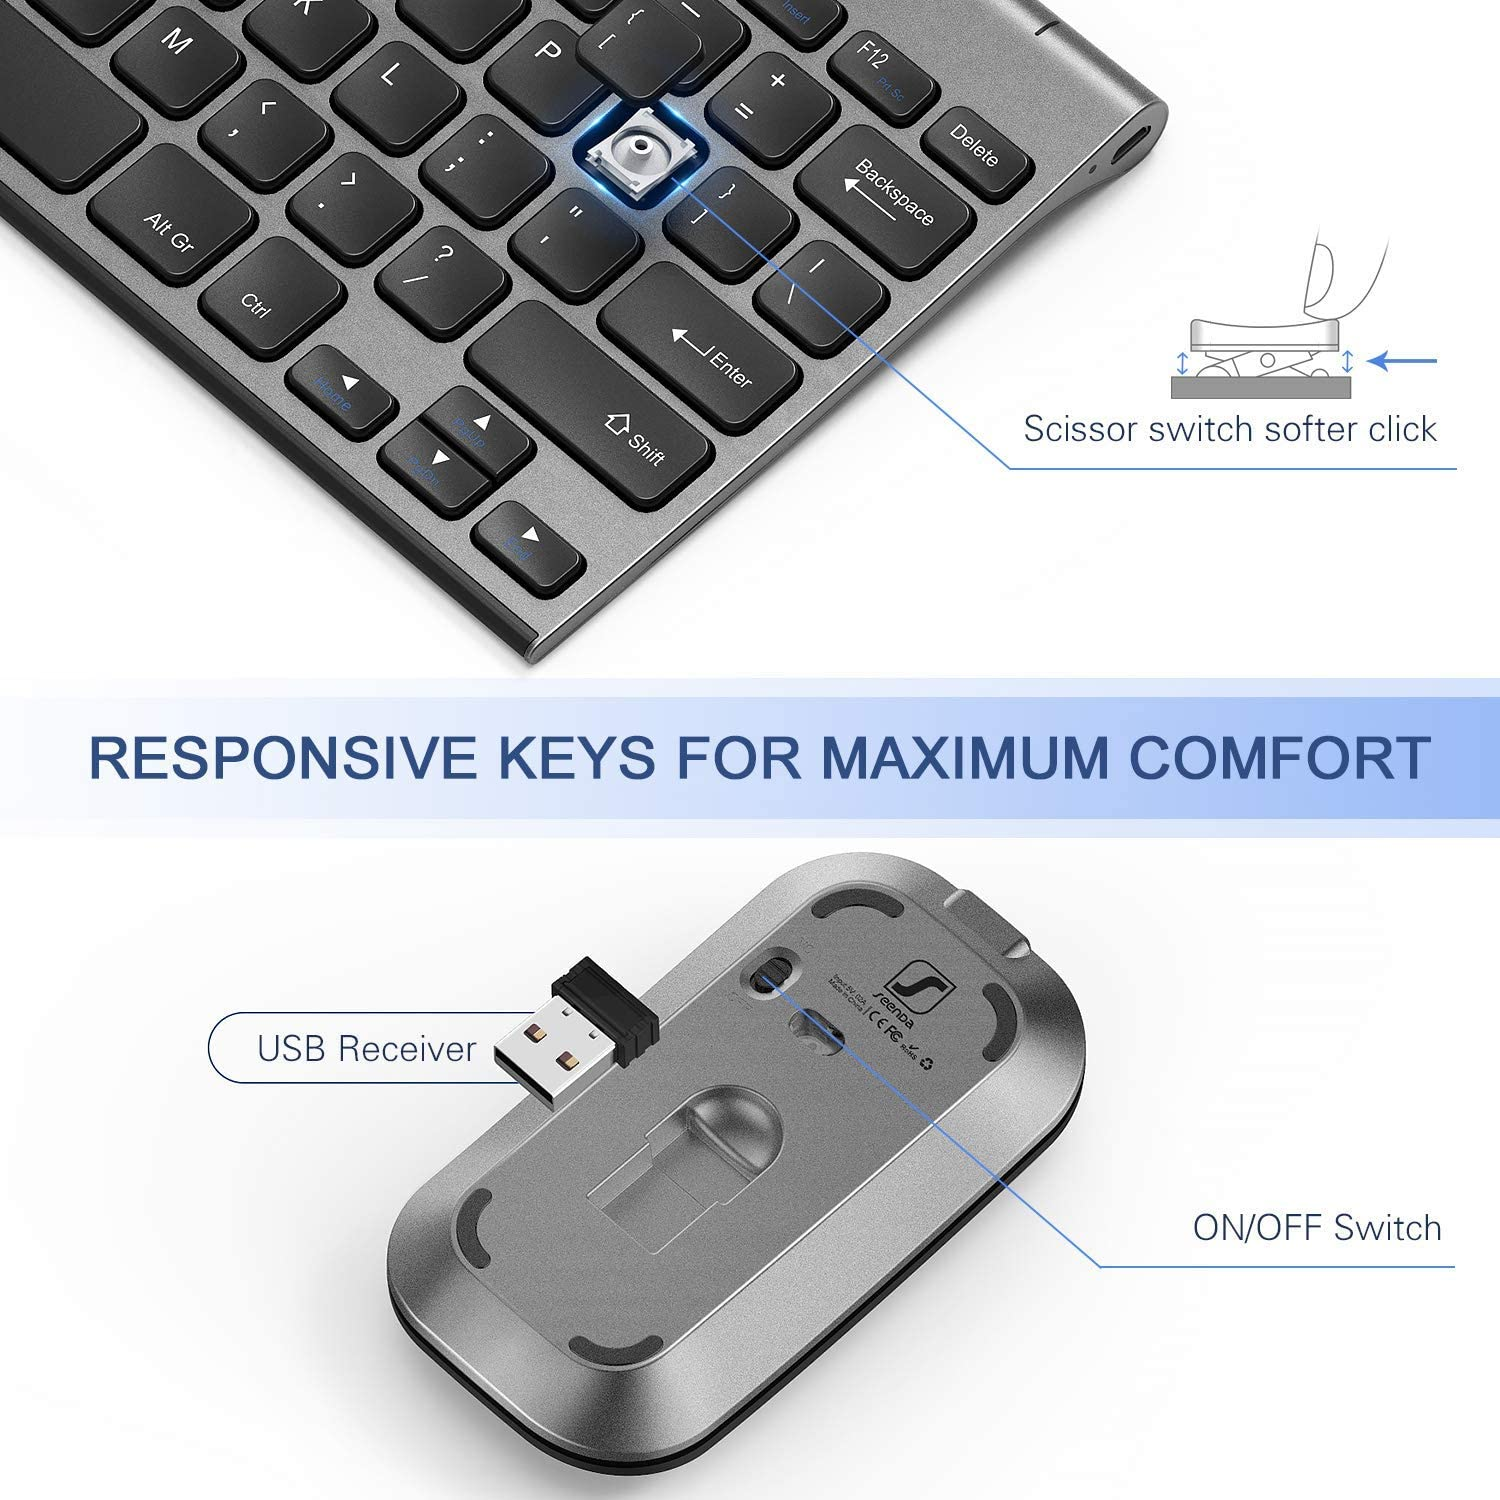 Black Wireless Keyboard and Mouse Combo seenda Low Profile Small Rechargeable Wireless Keyboard and Mouse for Windows Devices